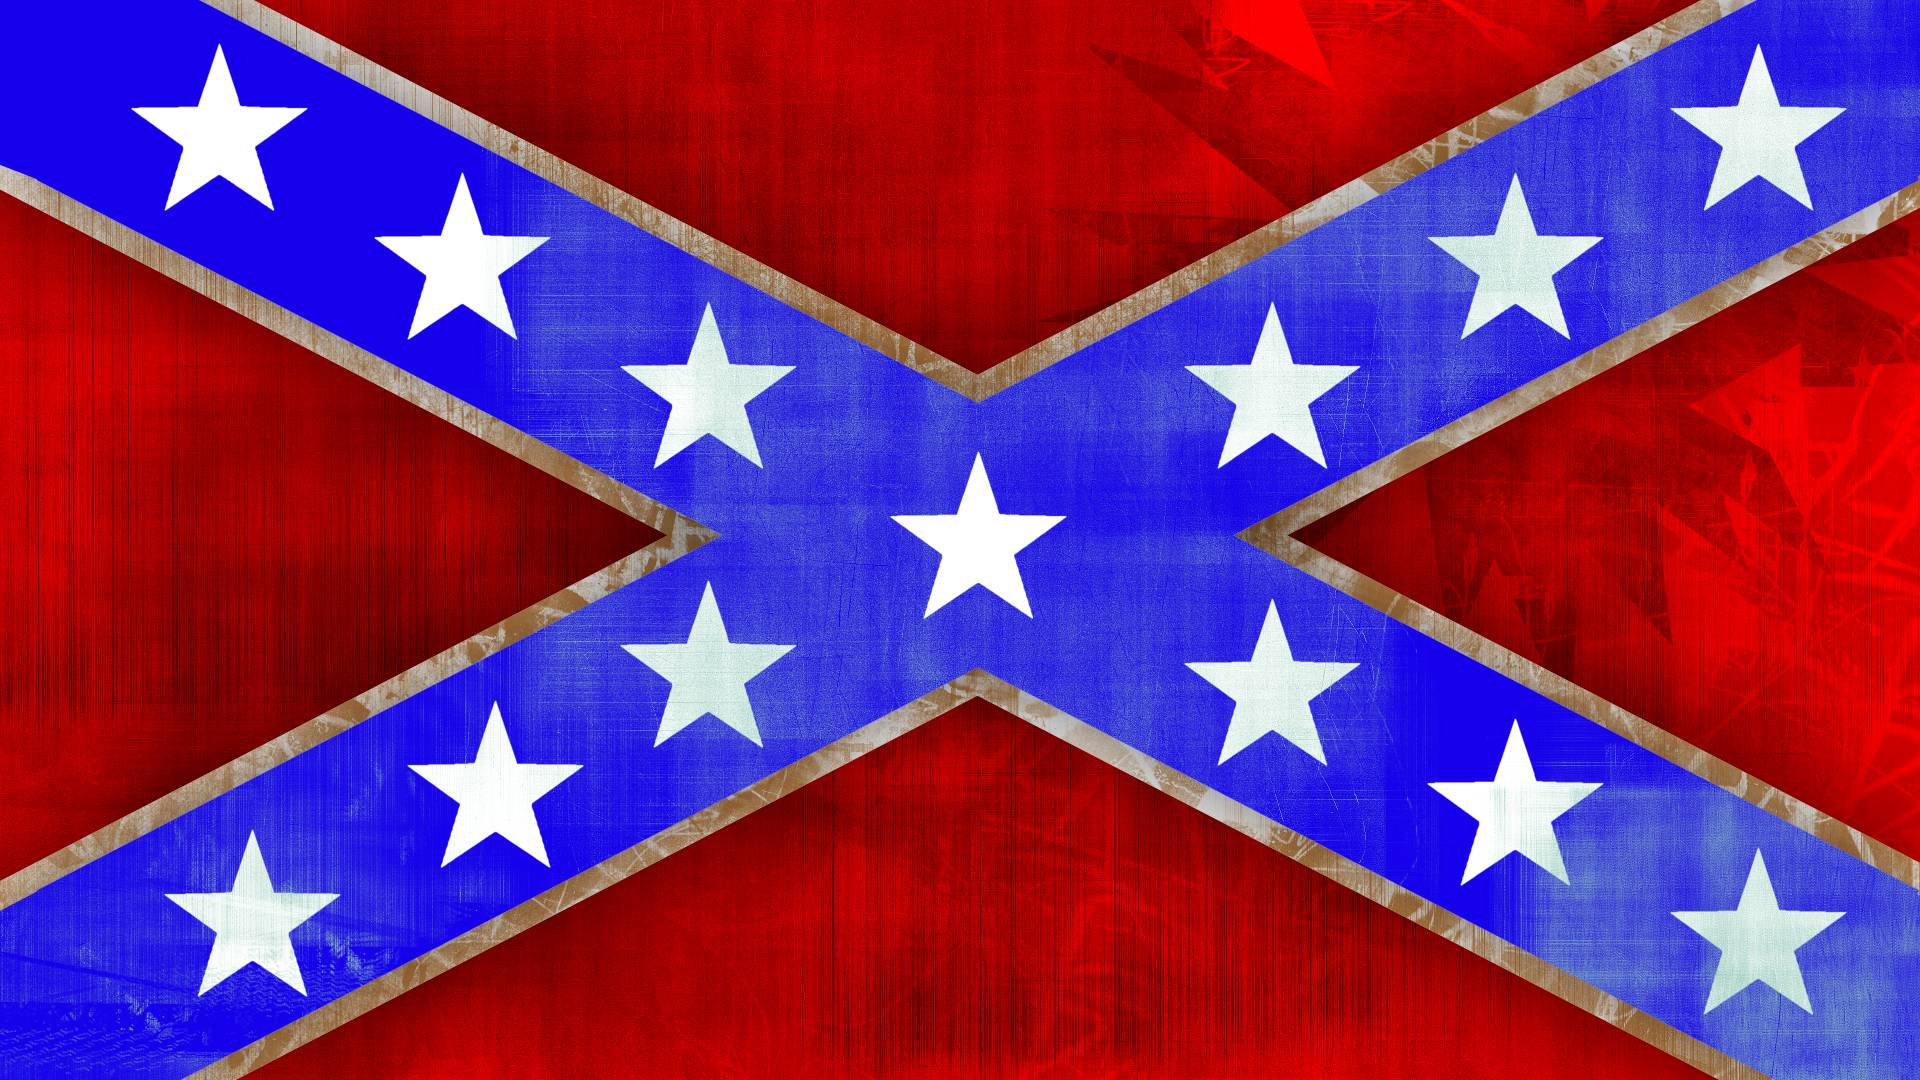 Confederate Flag Wallpapers 1920x1080